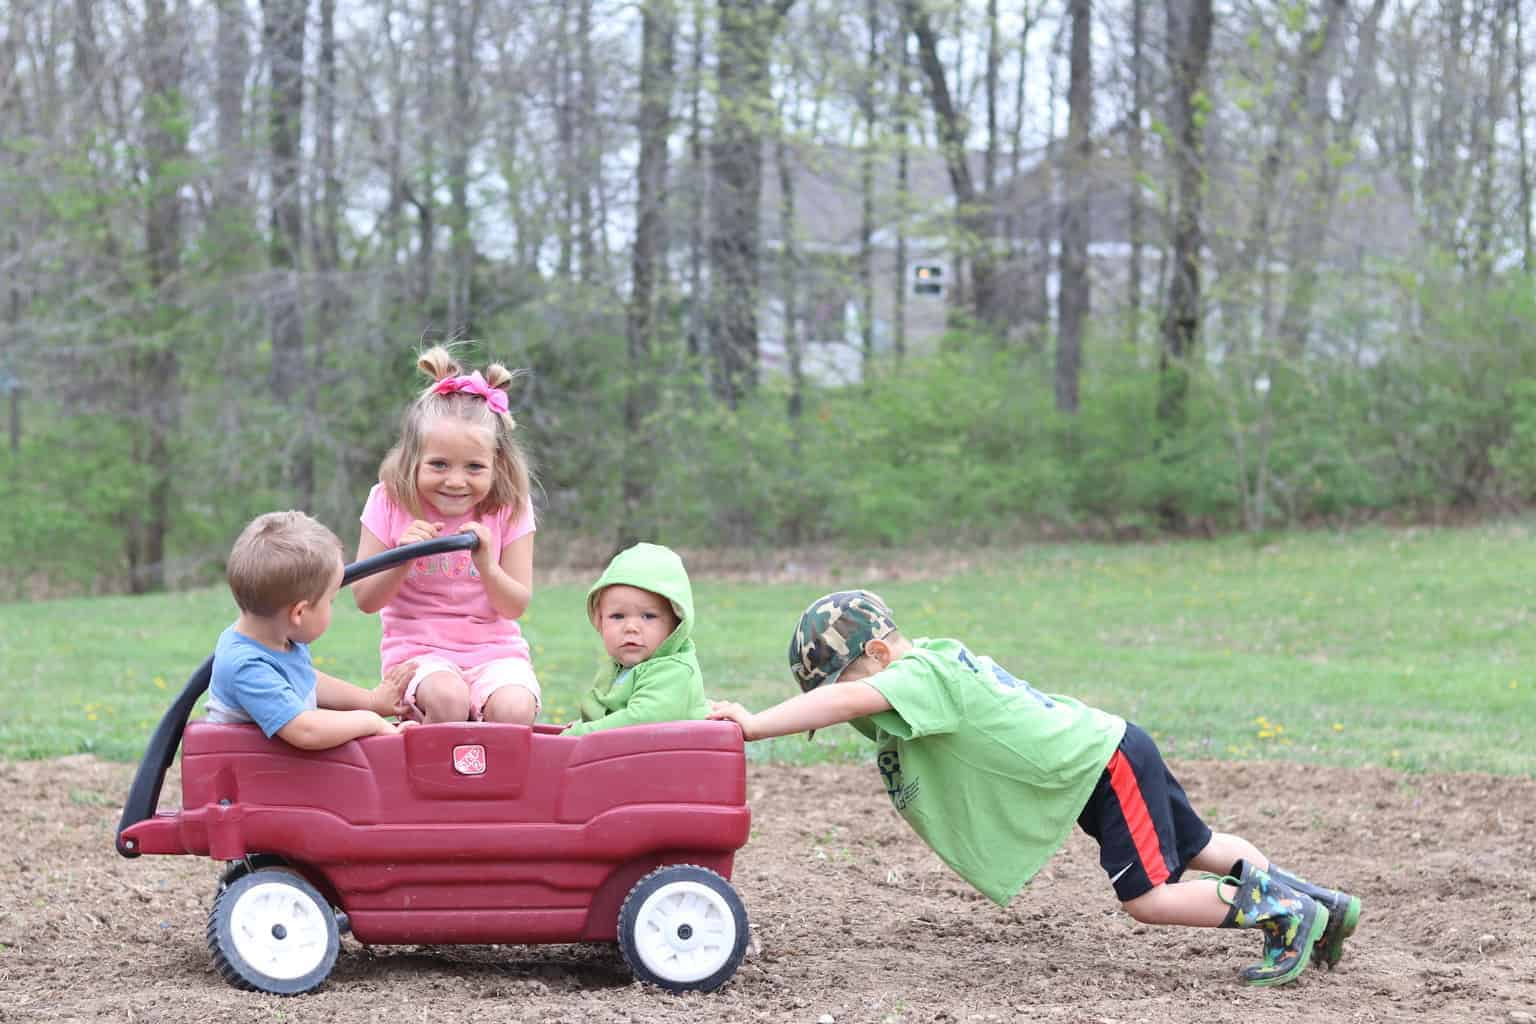 4 kids playing outside for play time before starting homeschool, day in the life with kids